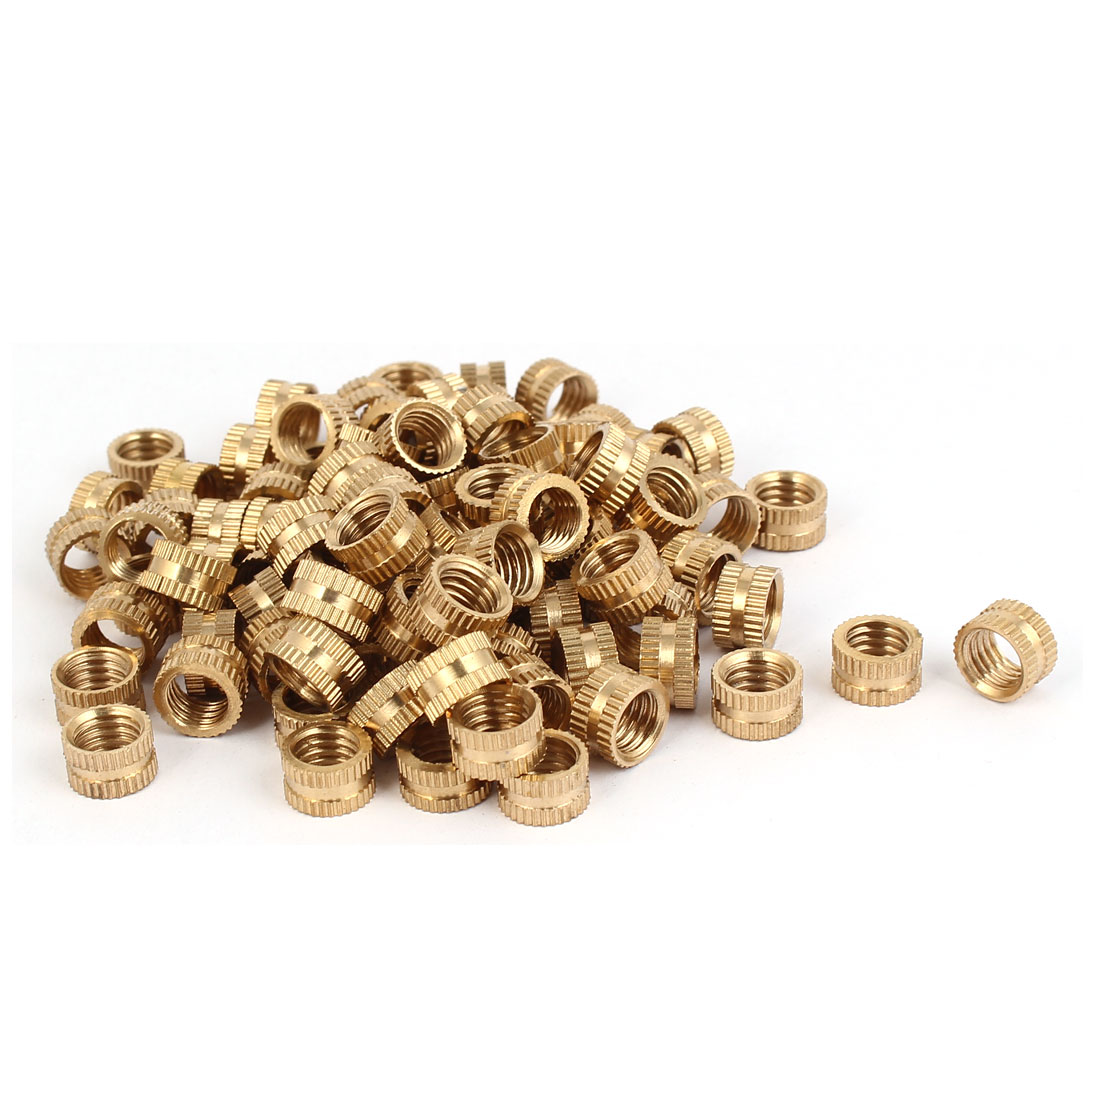 M8 x 6mm Female Thread Brass Knurled Threaded Round Insert Embedded Nuts 100PCS